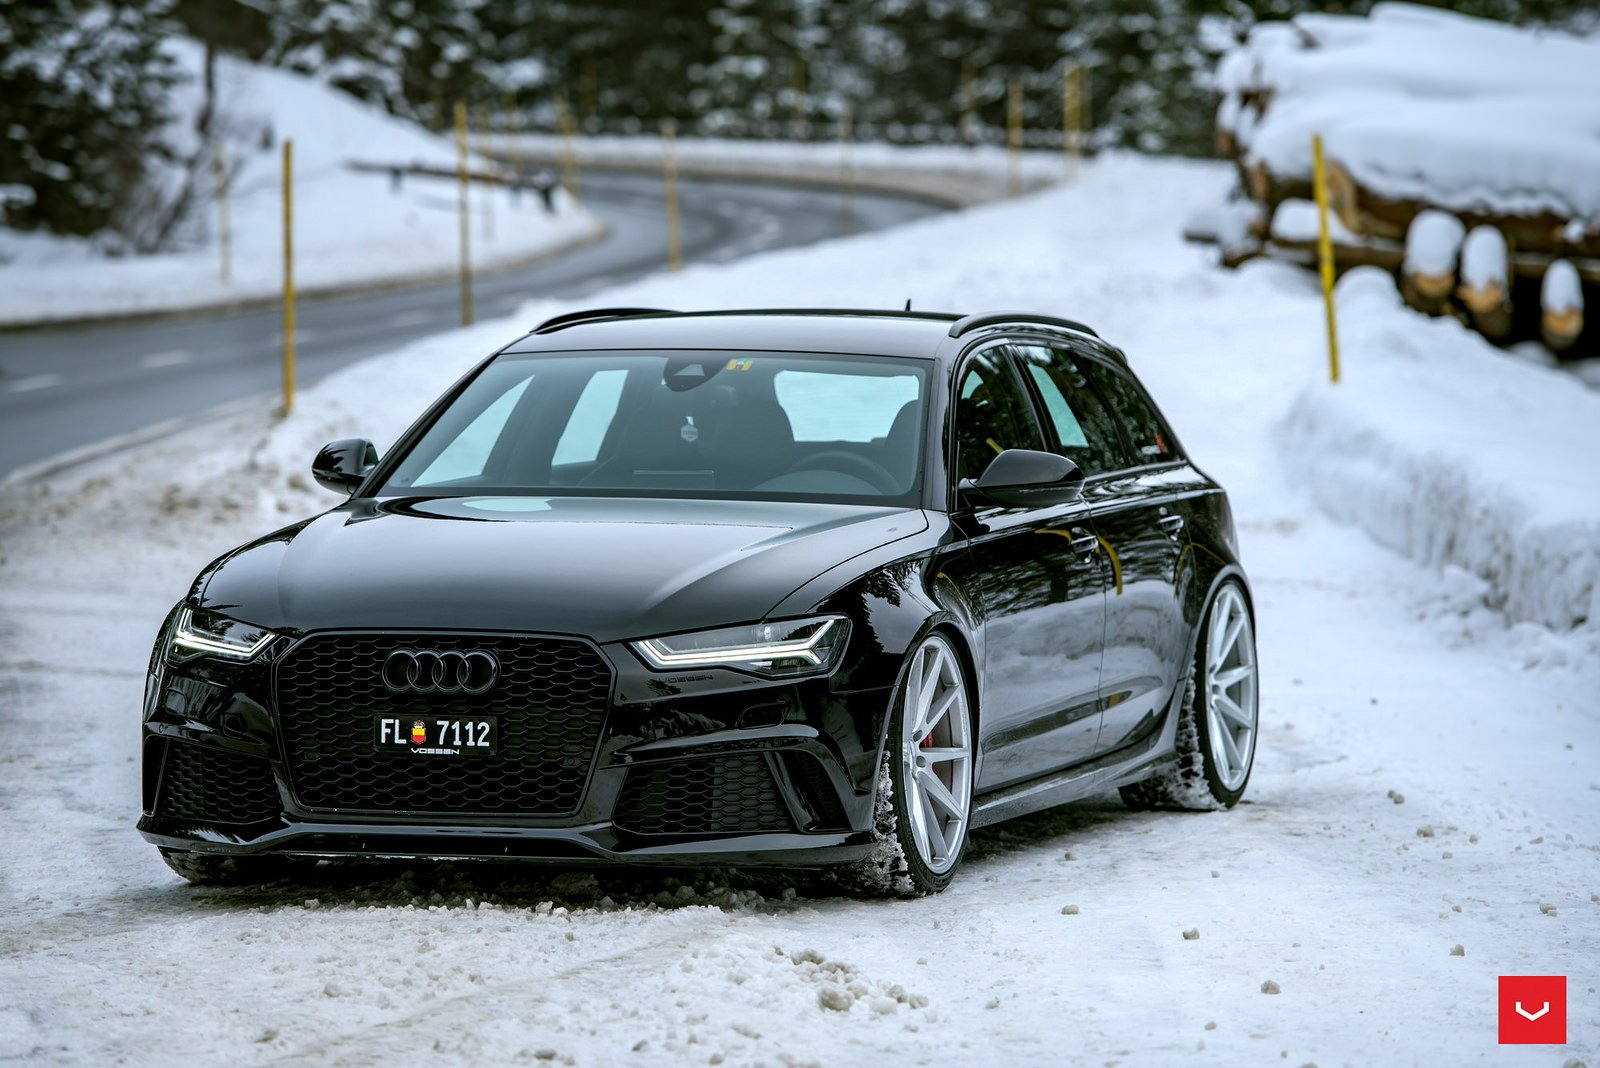 Audi Rs6 Avant Black Vossen Wheels Cars Wallpaper